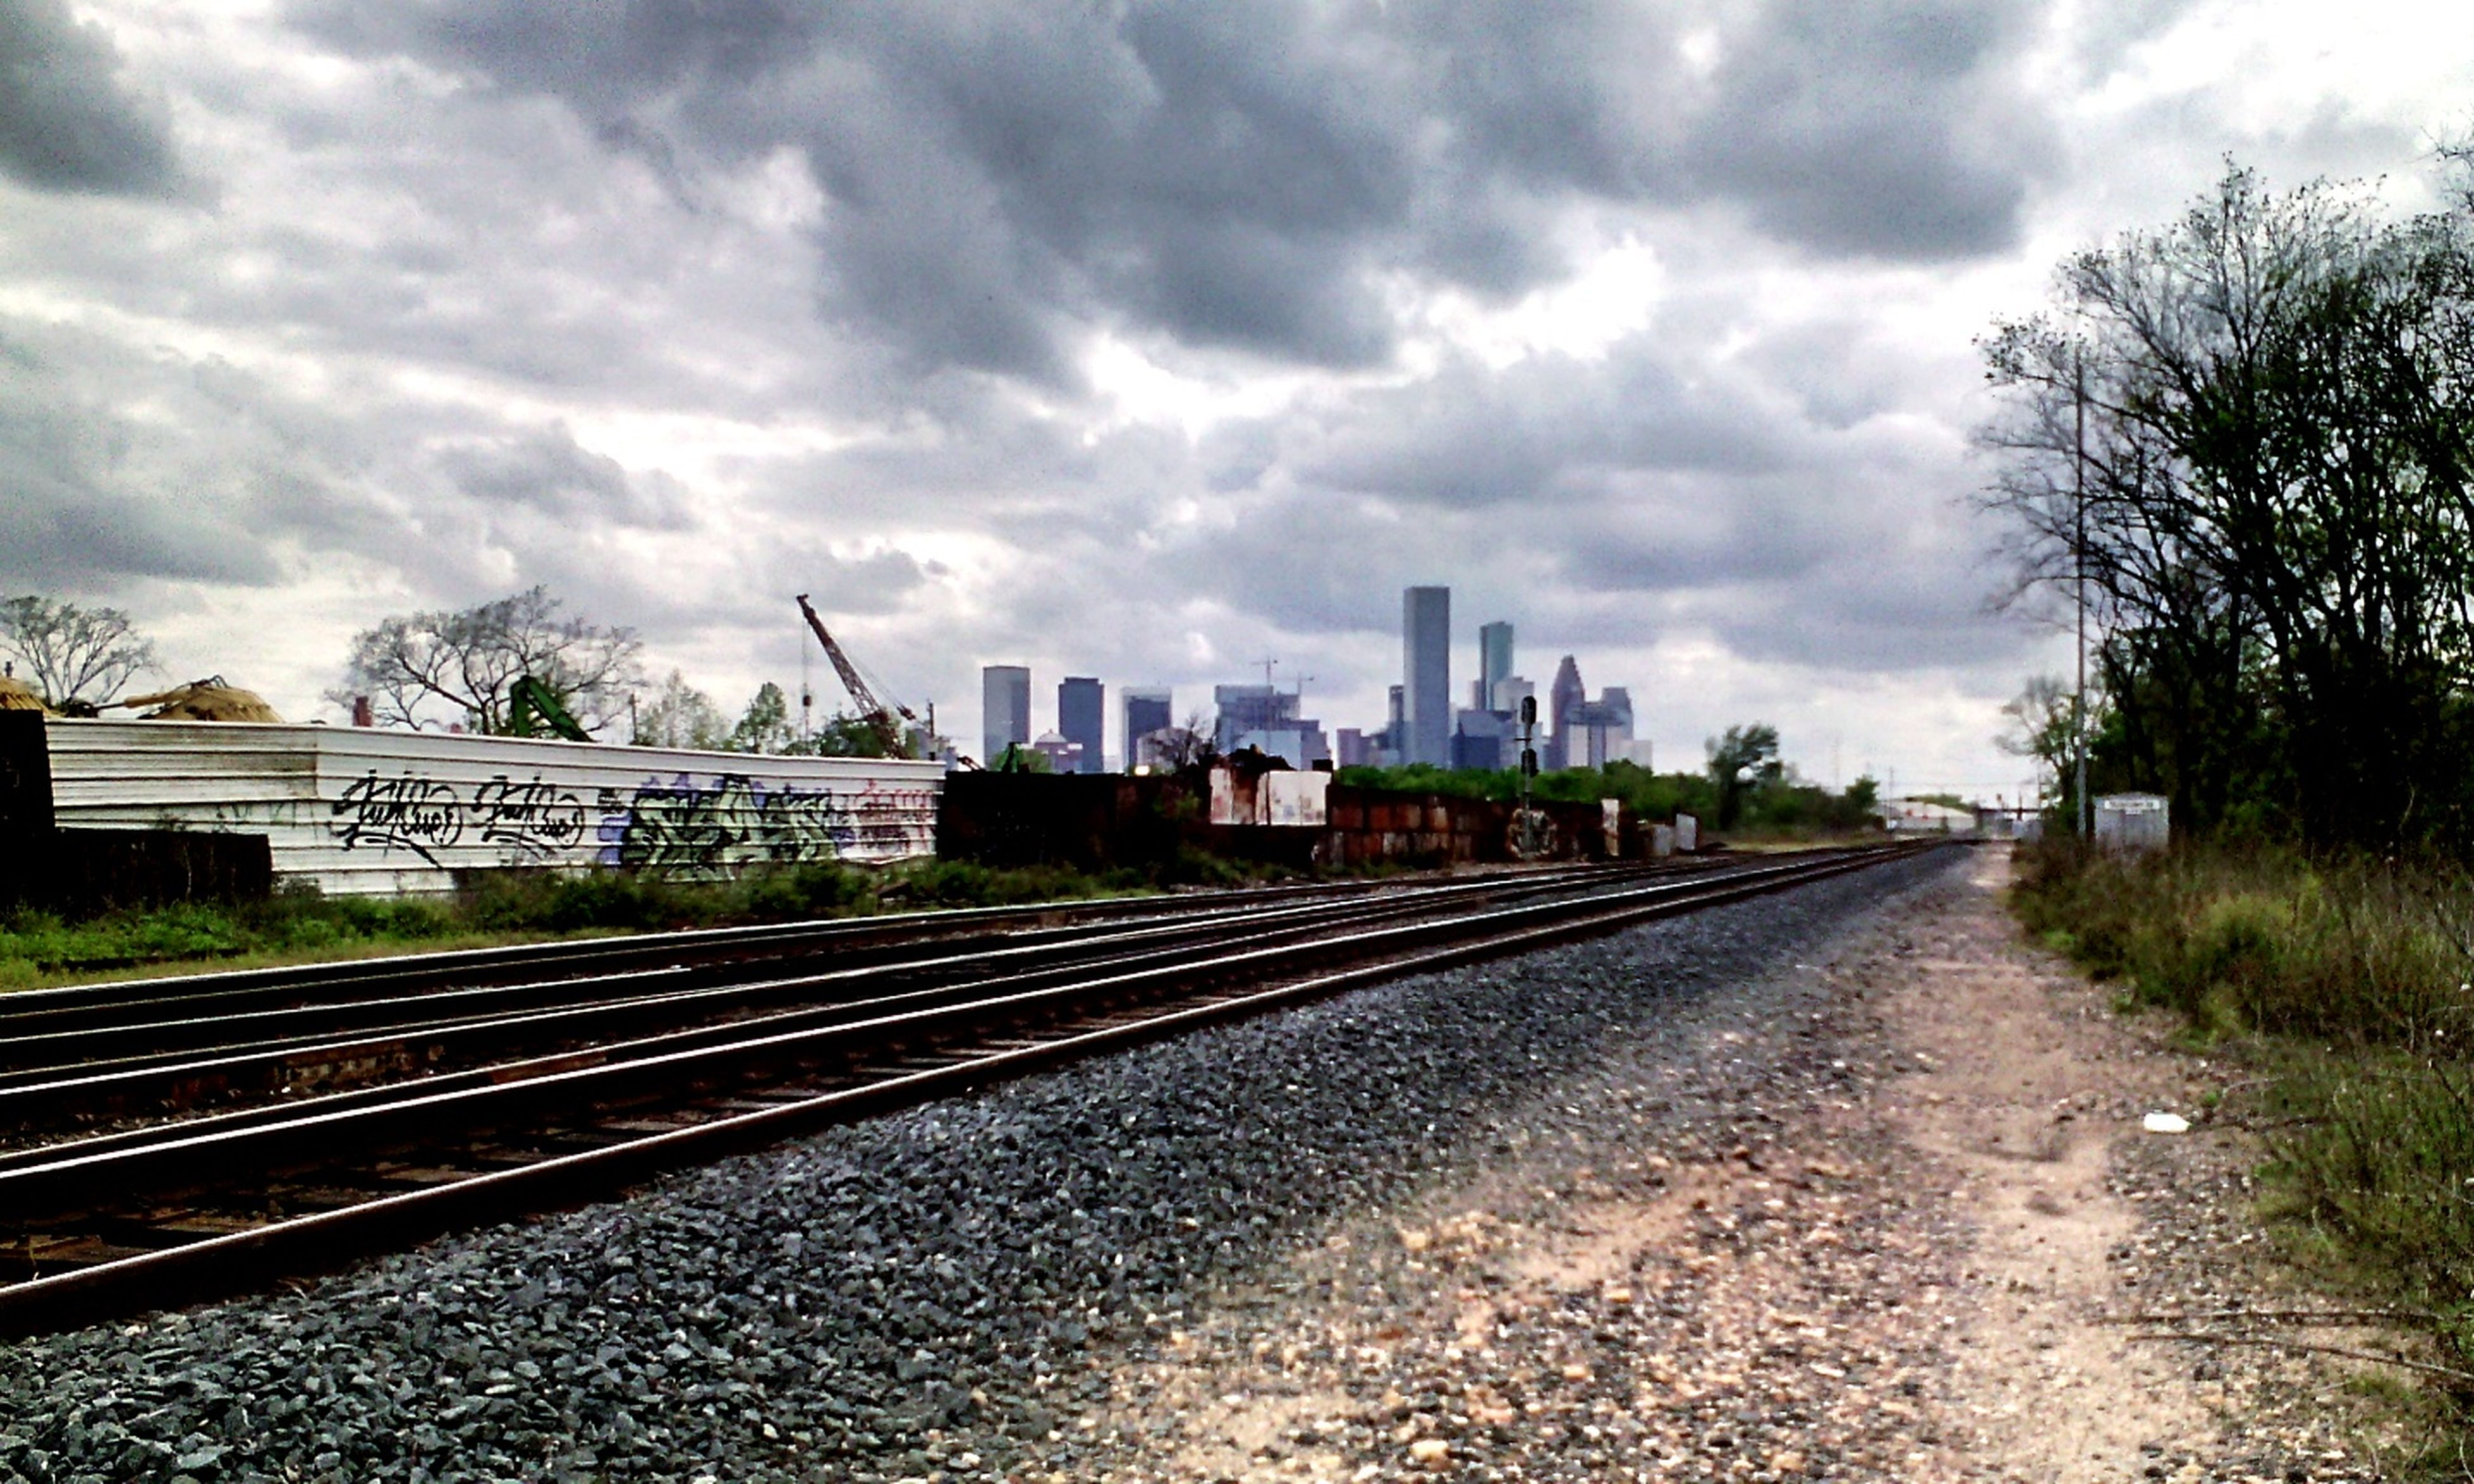 sky, cloud - sky, building exterior, architecture, railroad track, built structure, cloudy, rail transportation, cloud, the way forward, transportation, diminishing perspective, tree, overcast, city, vanishing point, day, road, weather, outdoors